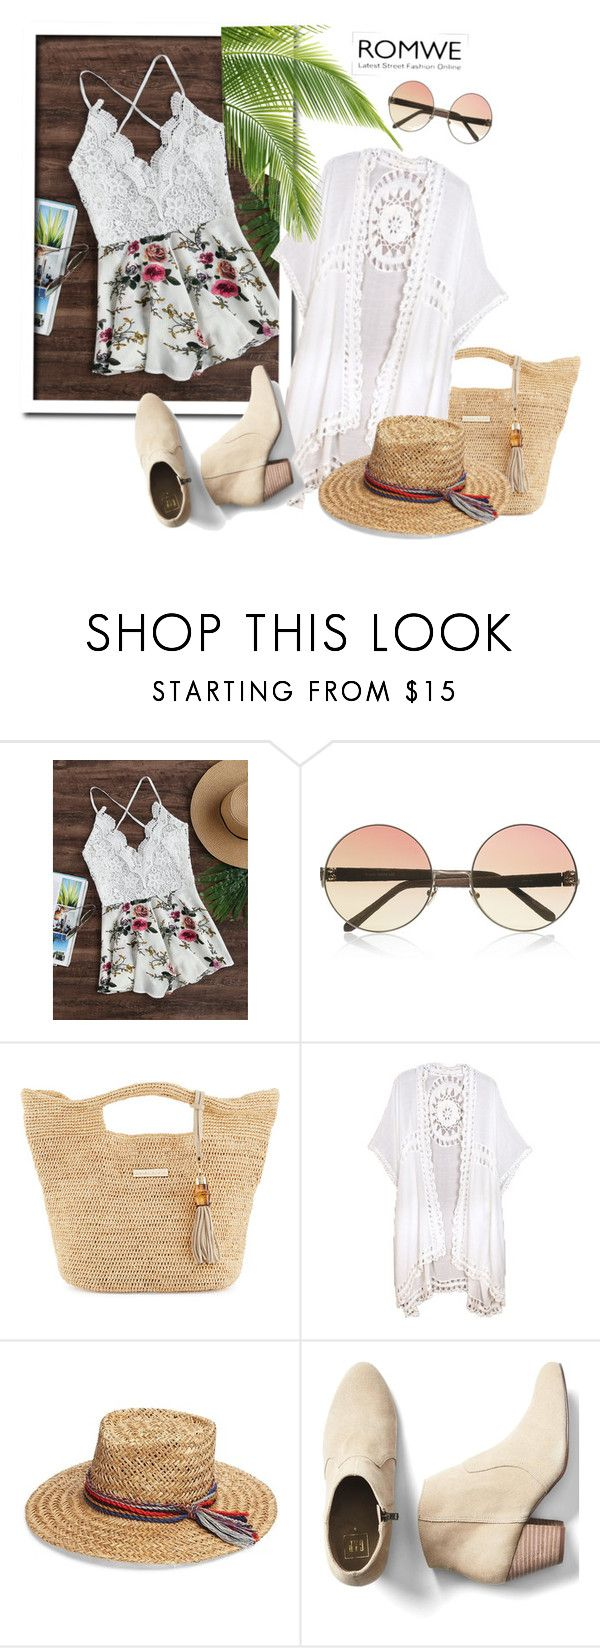 """ROMWE"" by tattooedmum on Polyvore featuring Linda Farrow, Heidi Klein, Do Everything In Love, Inverni and Gap"